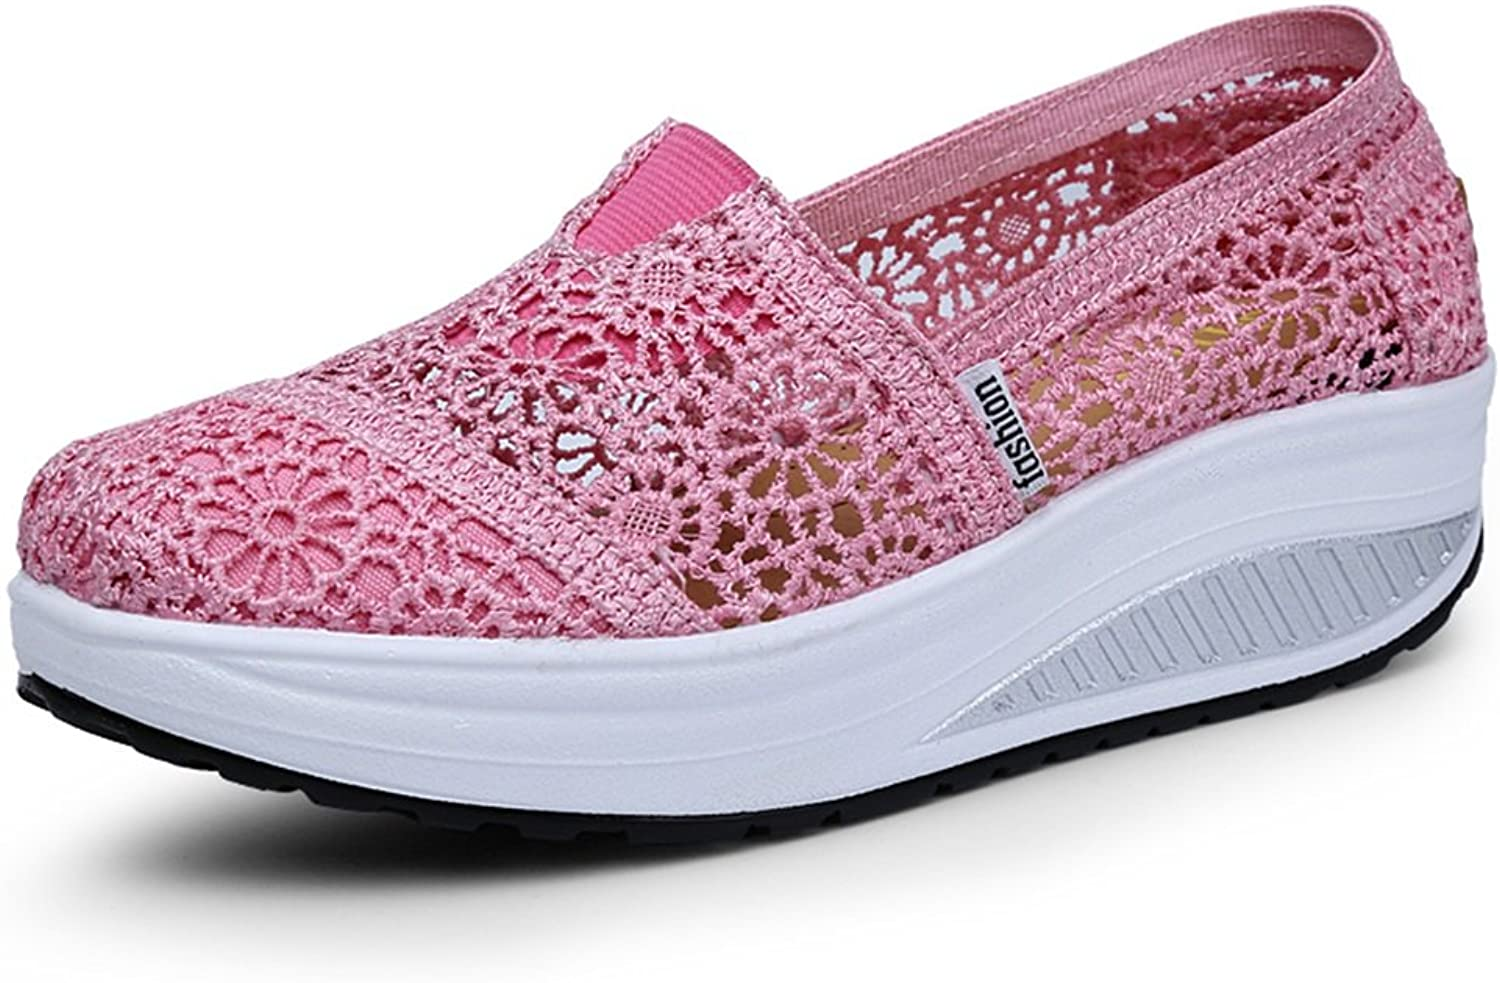 Breathable Lace Shake shoes Women's shoes 2018 Spring and Summer Female Net shoes Female Shallow Mouth Casual shoes